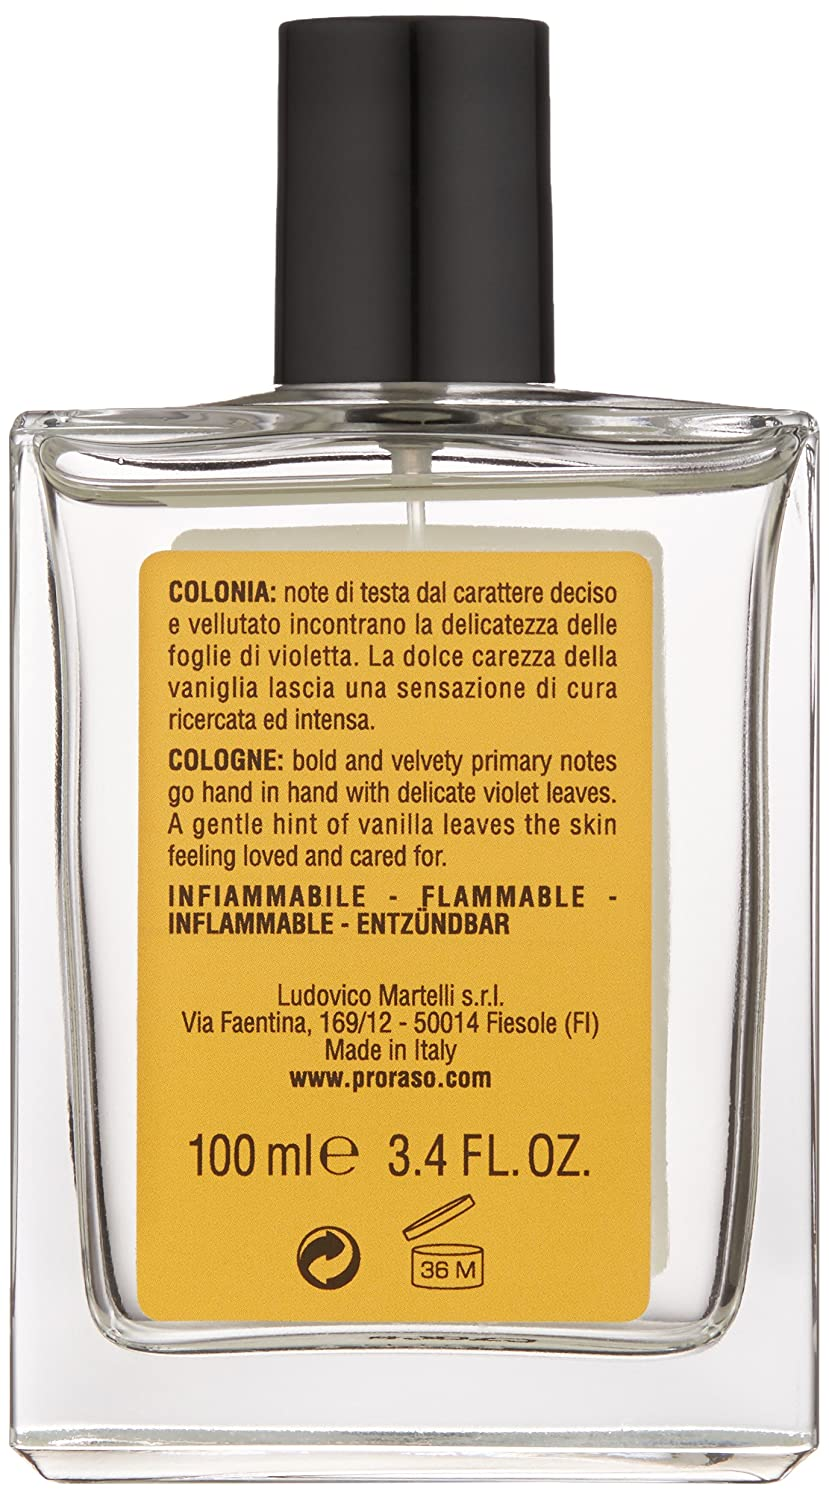 Amazon.com: Proraso - Eau de Cologne - Wood & Spice - SINGLE BLADE - 100 ml: Luxury Beauty